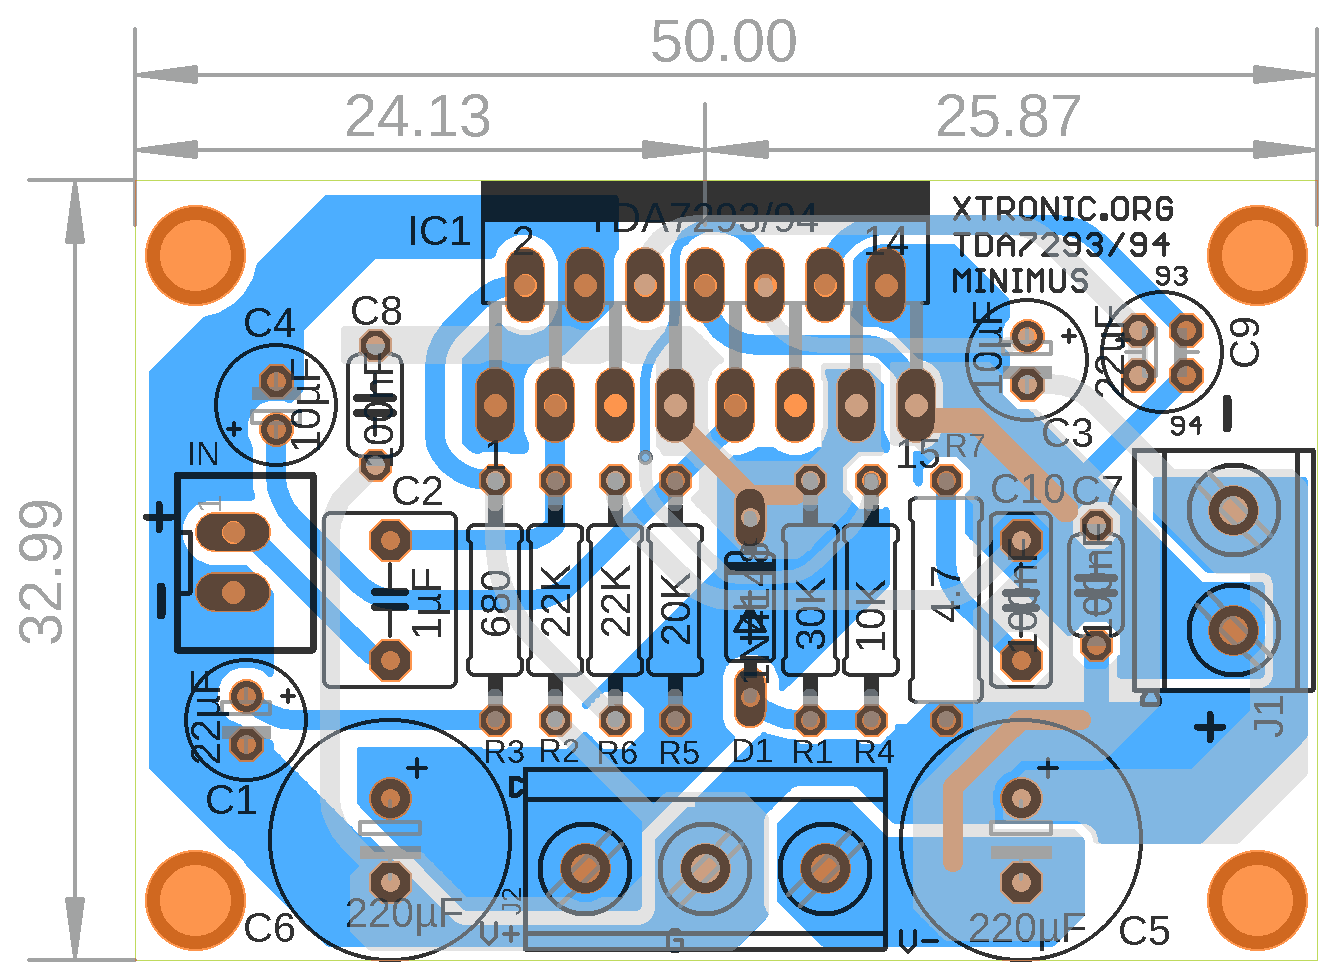 circuit diagram of home theater 1997 ford f350 headlight switch wiring audio power amplifier with ic tda7294 or tda7293 - #minimus xtronic